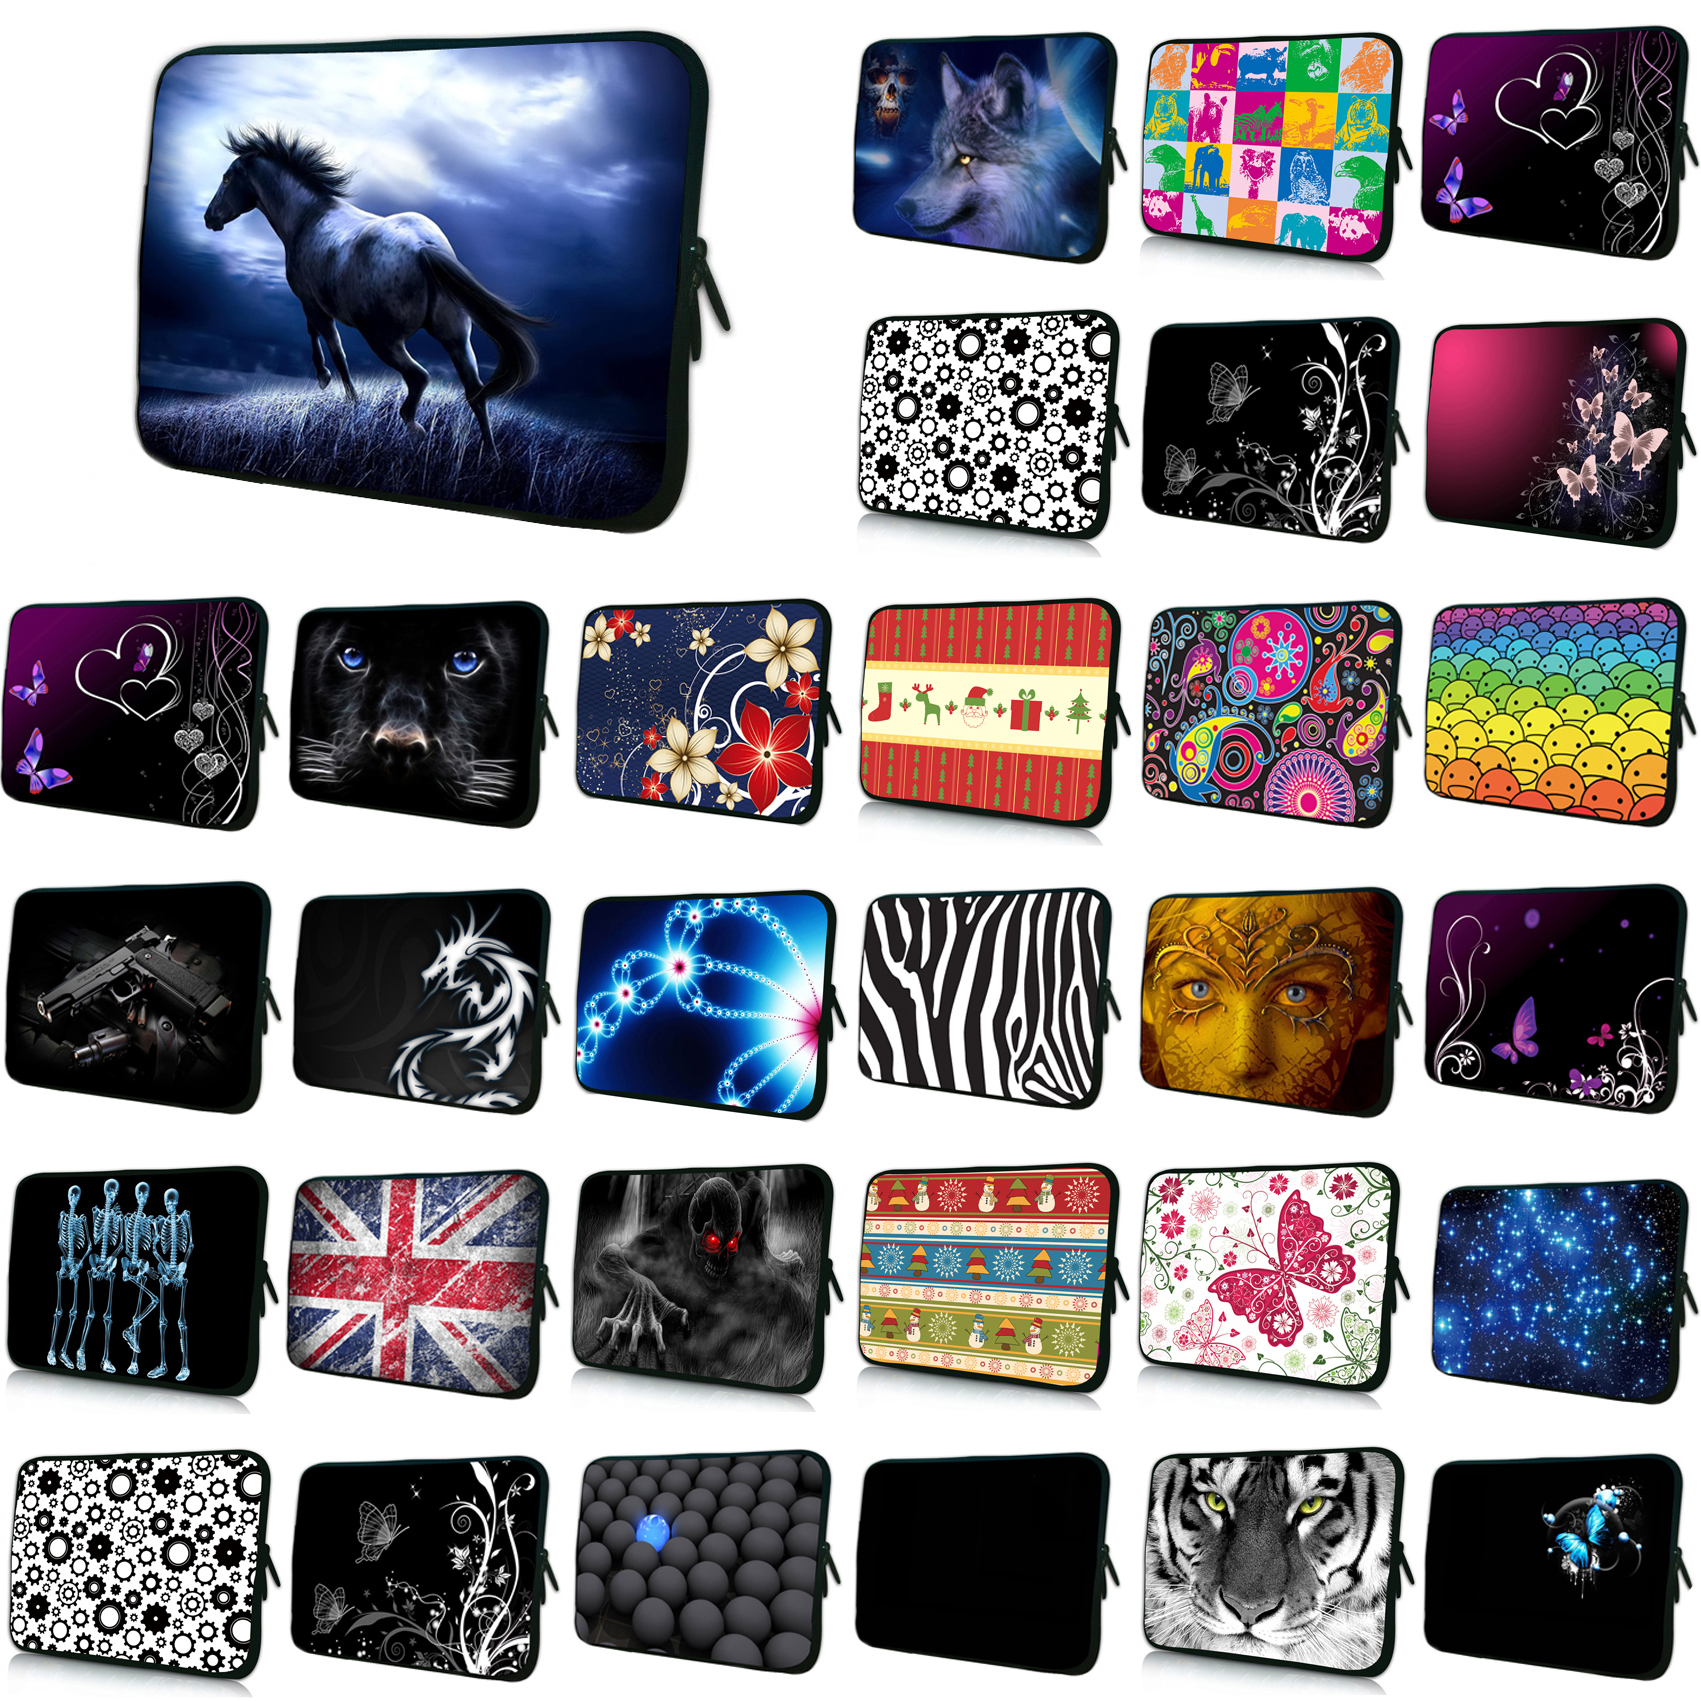 7 8 Mini PC Tablets Slim Liner Sleeve Cases 10 17 Laptop Bag 15.6 15.4 14 13.3 13 12.1 12 11.6 inch Netbook Shell Pouch Case